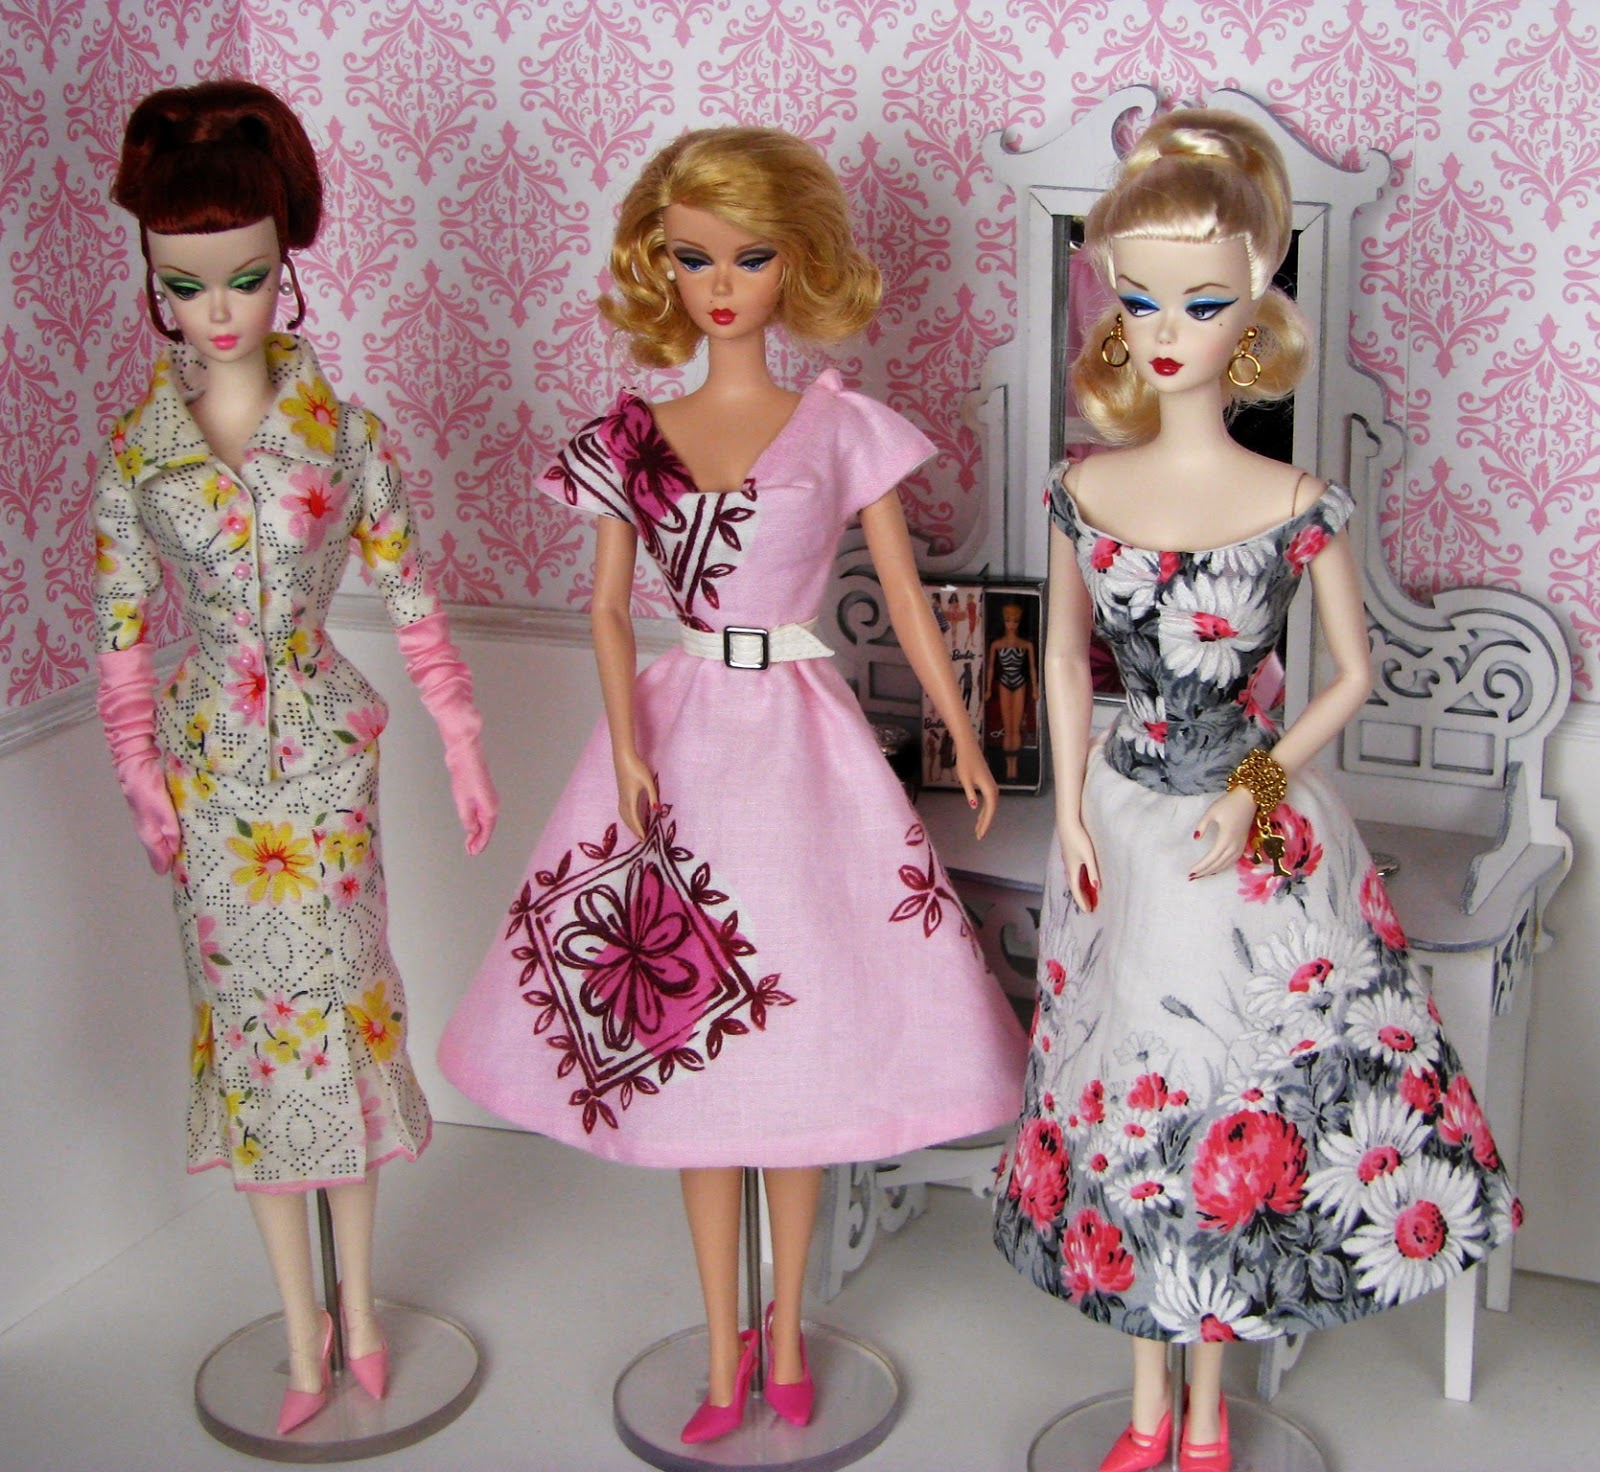 Cheryl StJohn GUEST Sylvia Bittners Stunning Barbie Couture